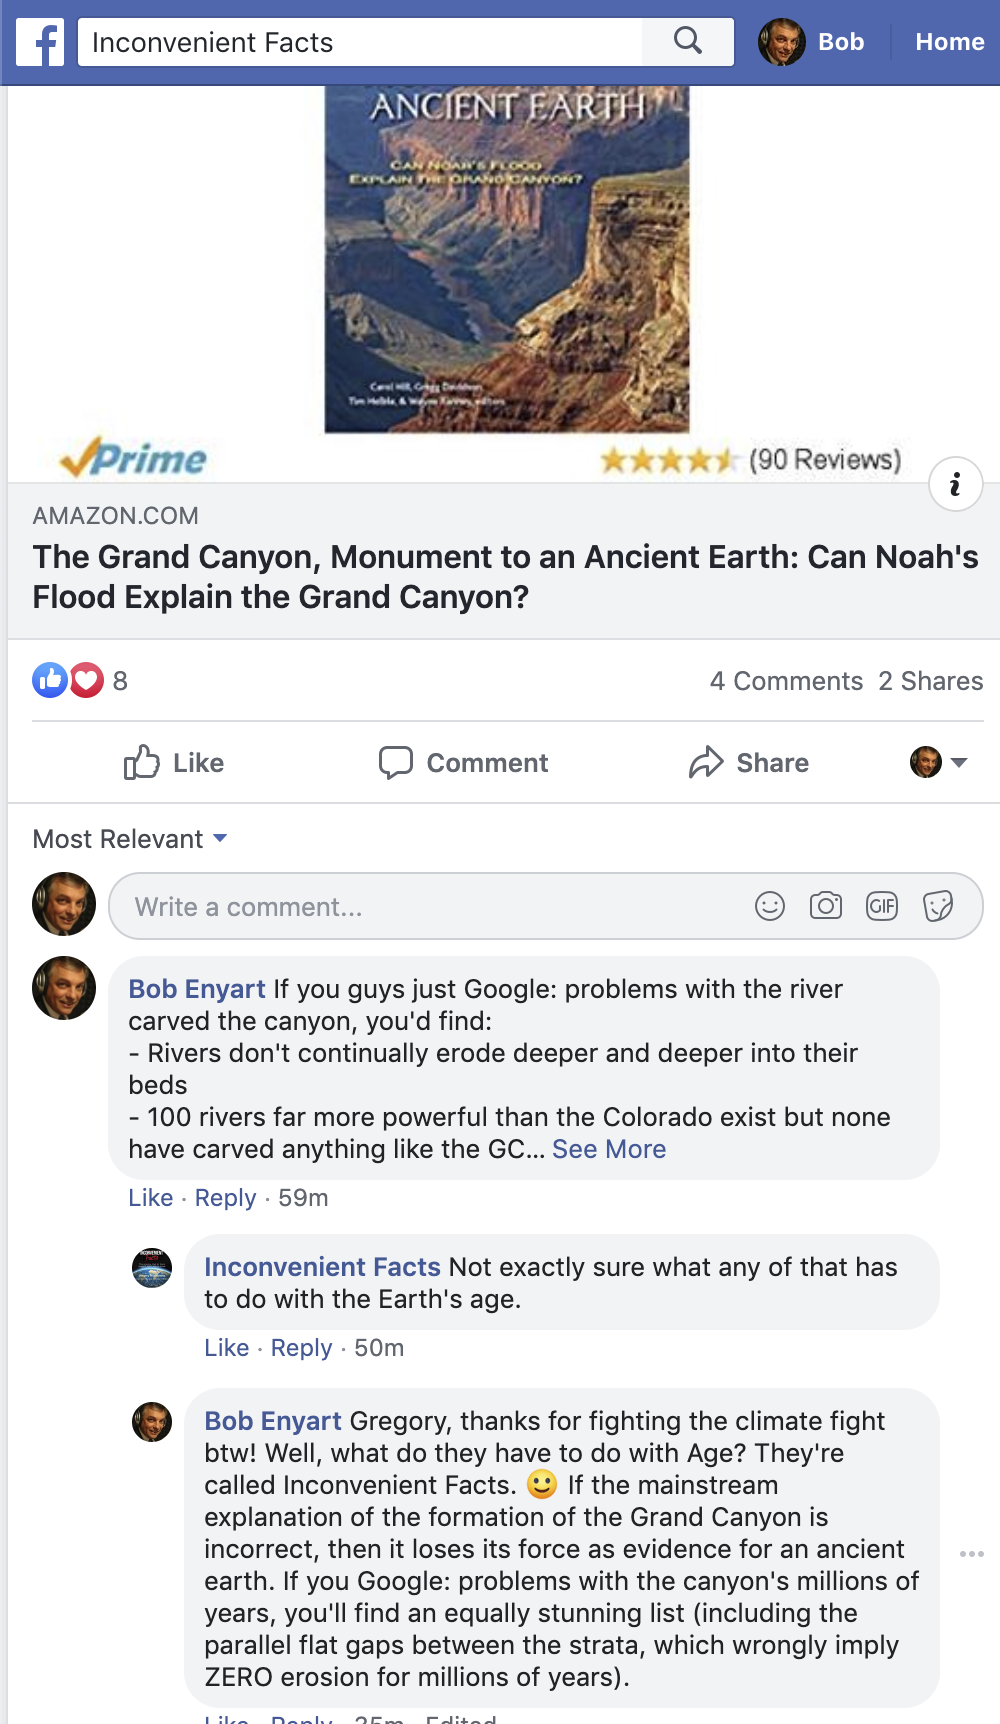 Gregory Wrightstone posts Grand Canyon Monument to an Ancient Earth, and RSR comments...